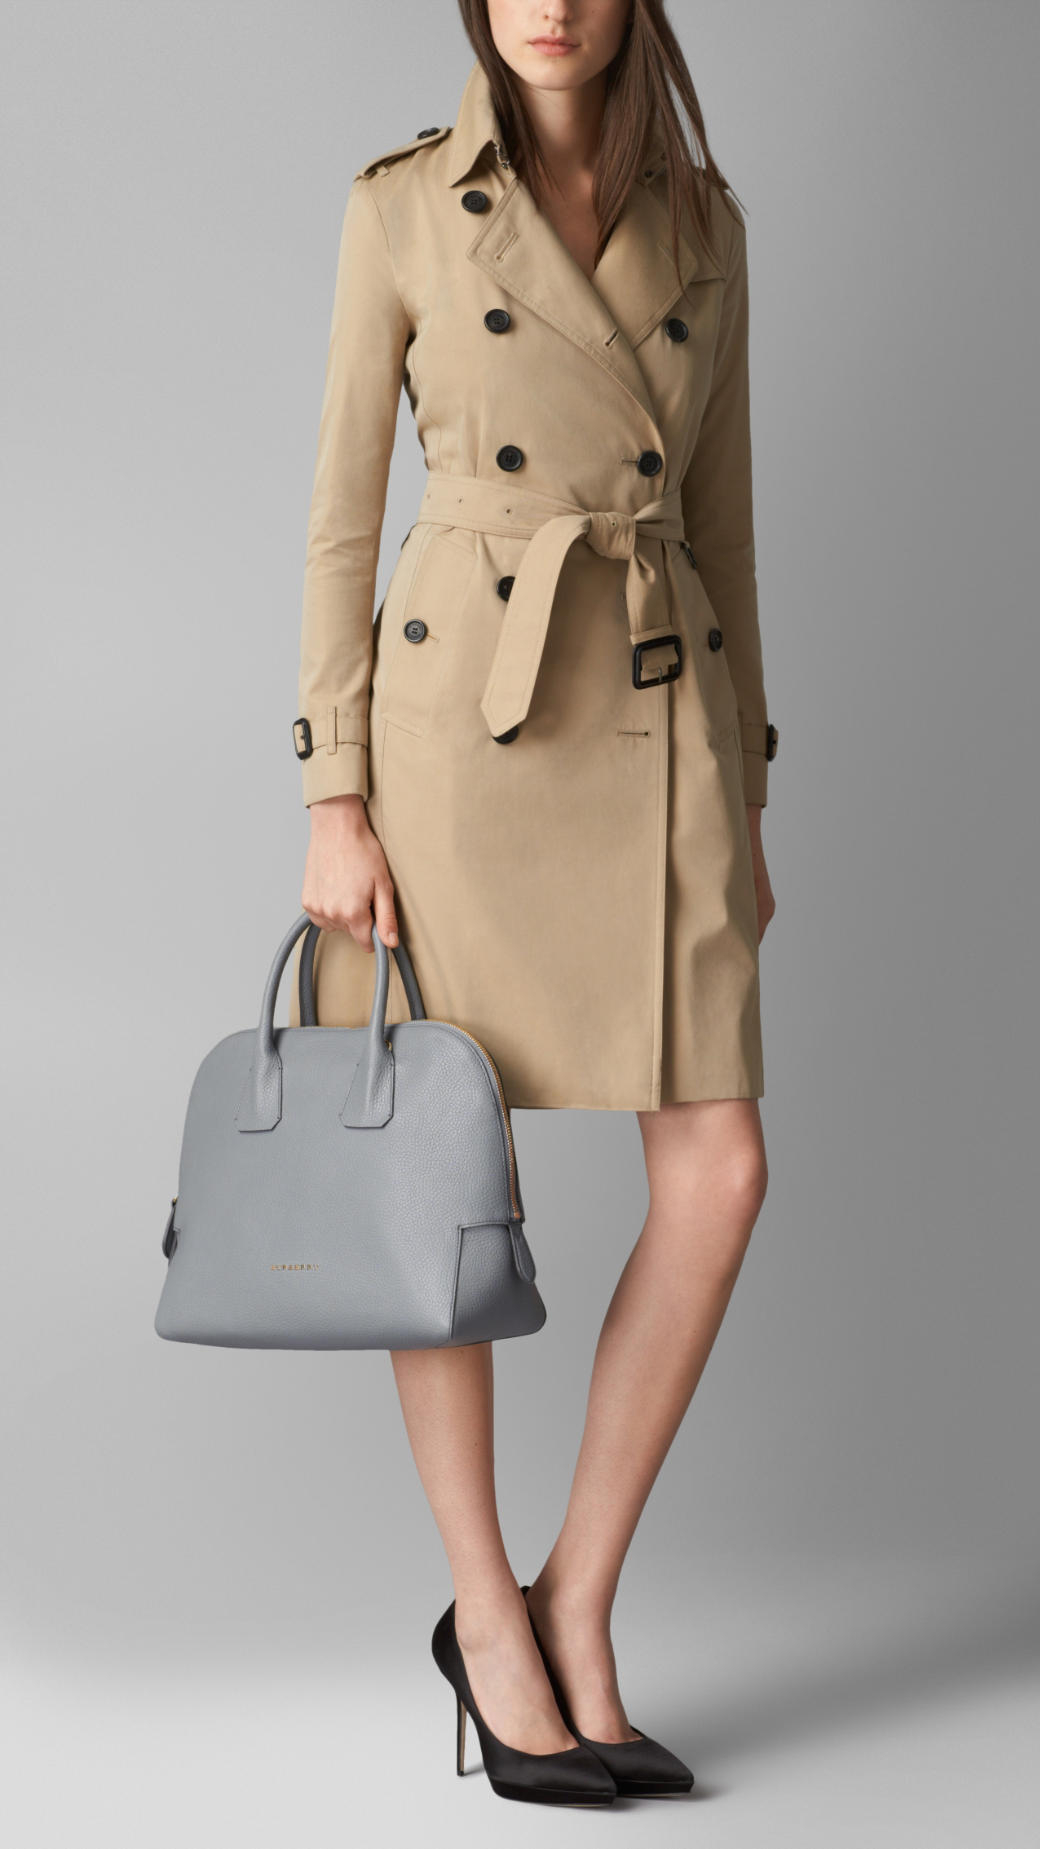 2c17c15f98 Burberry Small Grainy Leather Bowling Bag in Gray - Lyst